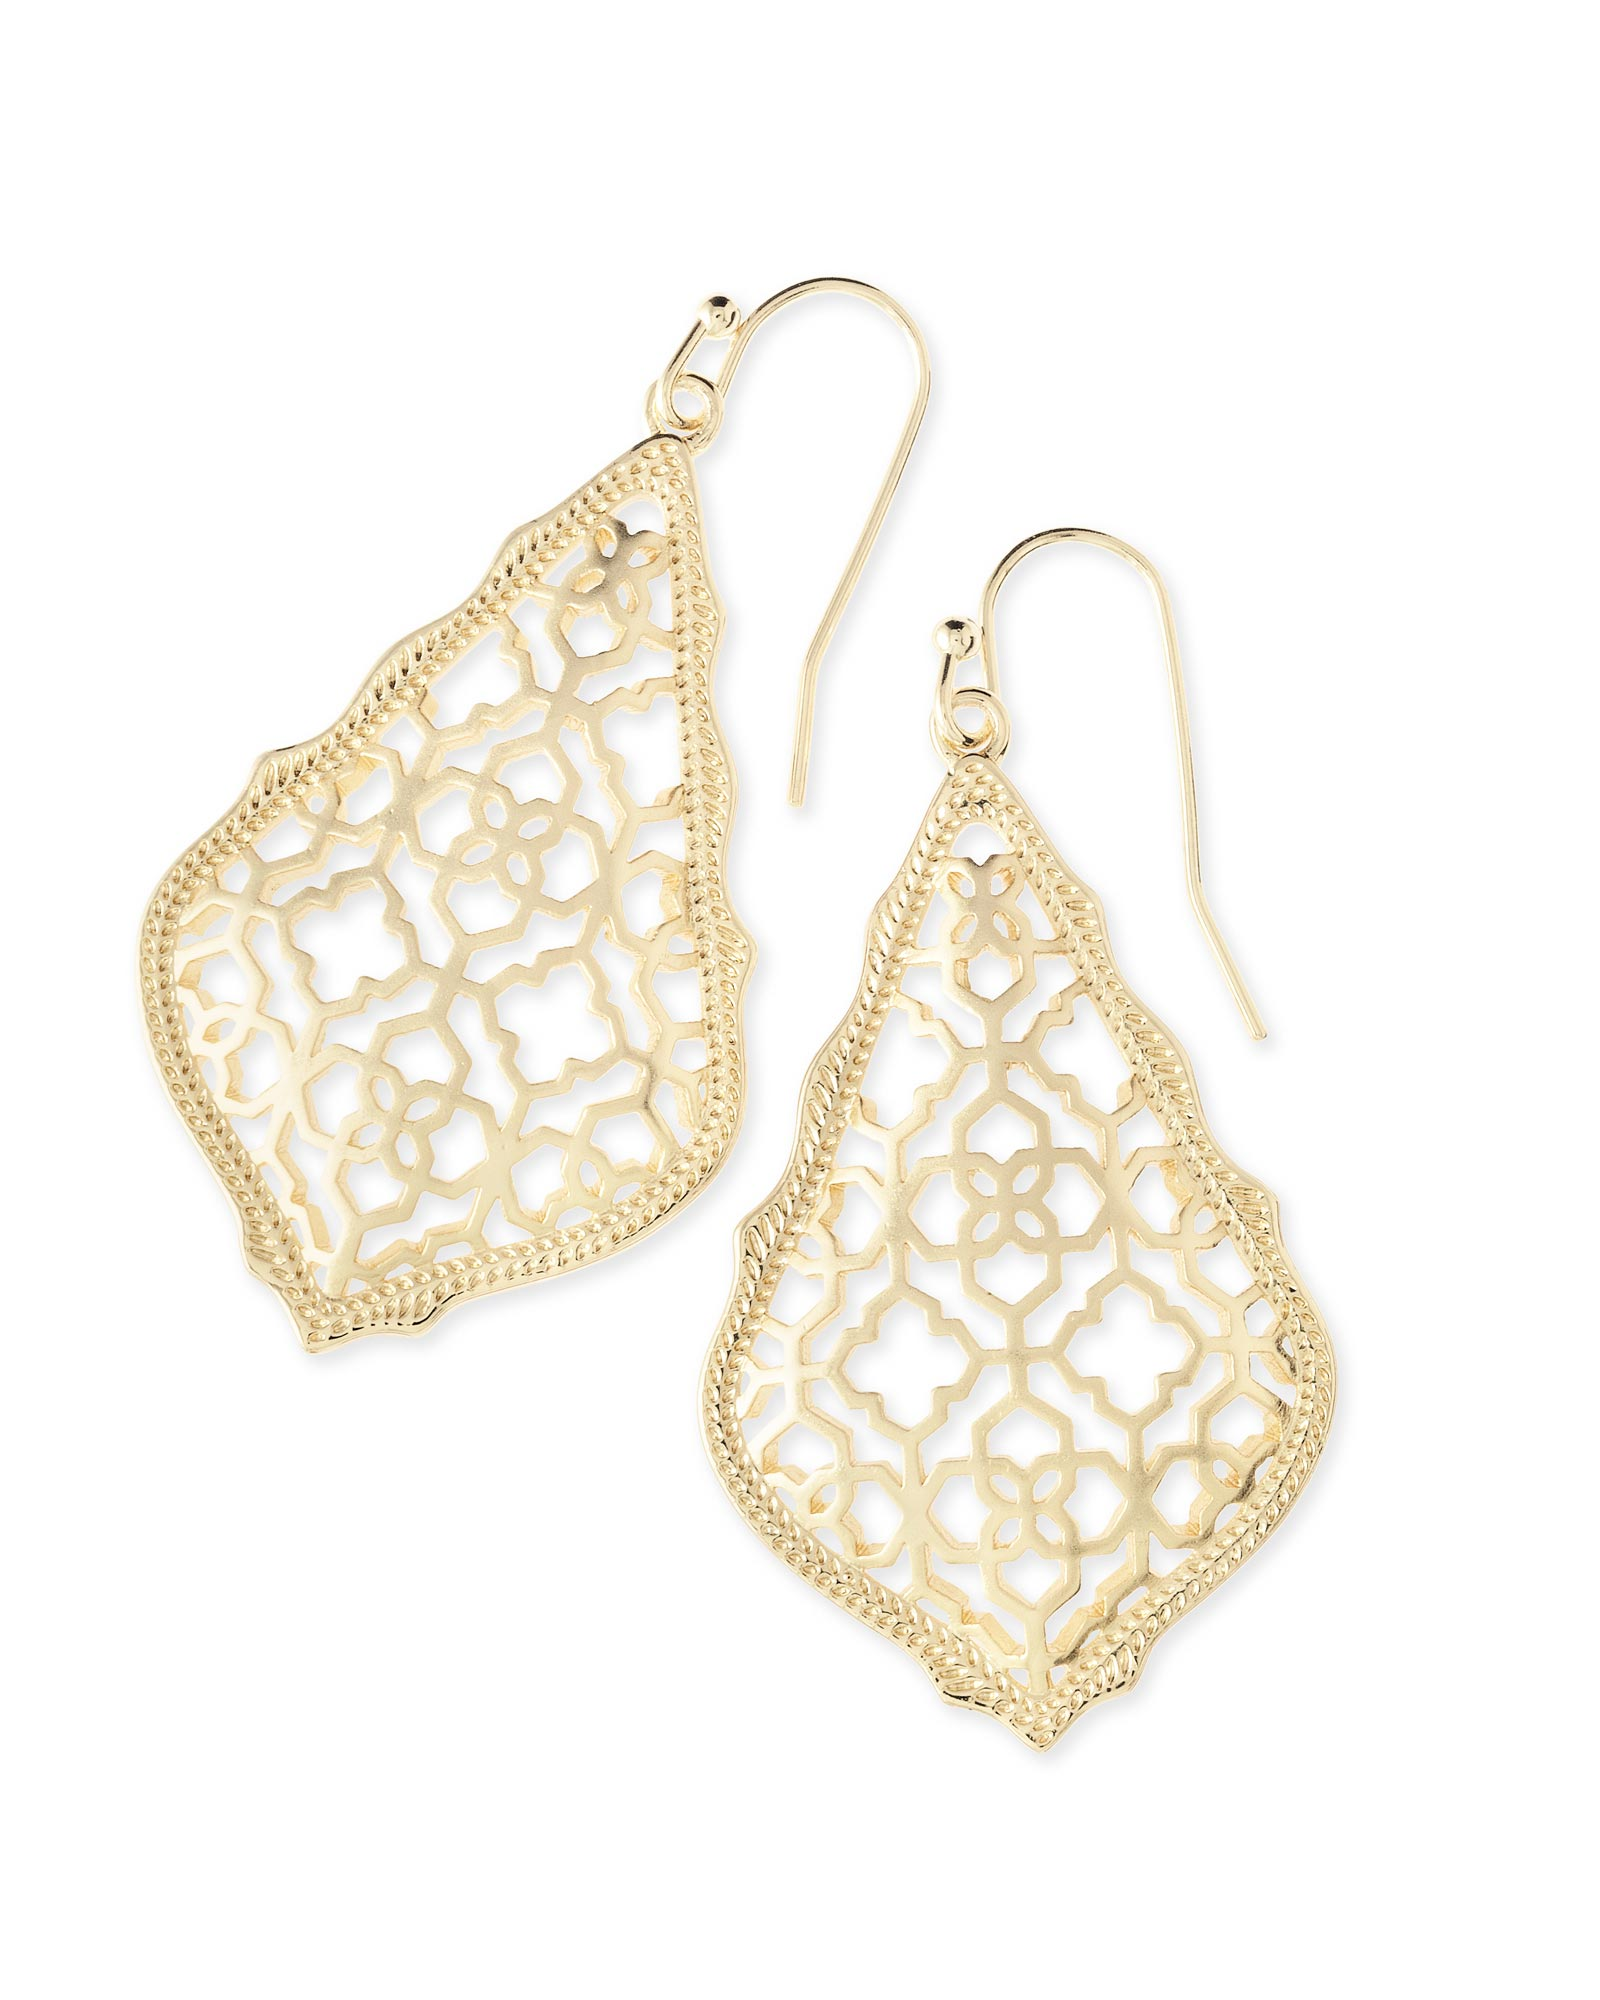 Adair Drop Earrings in Gold Filigree Mix